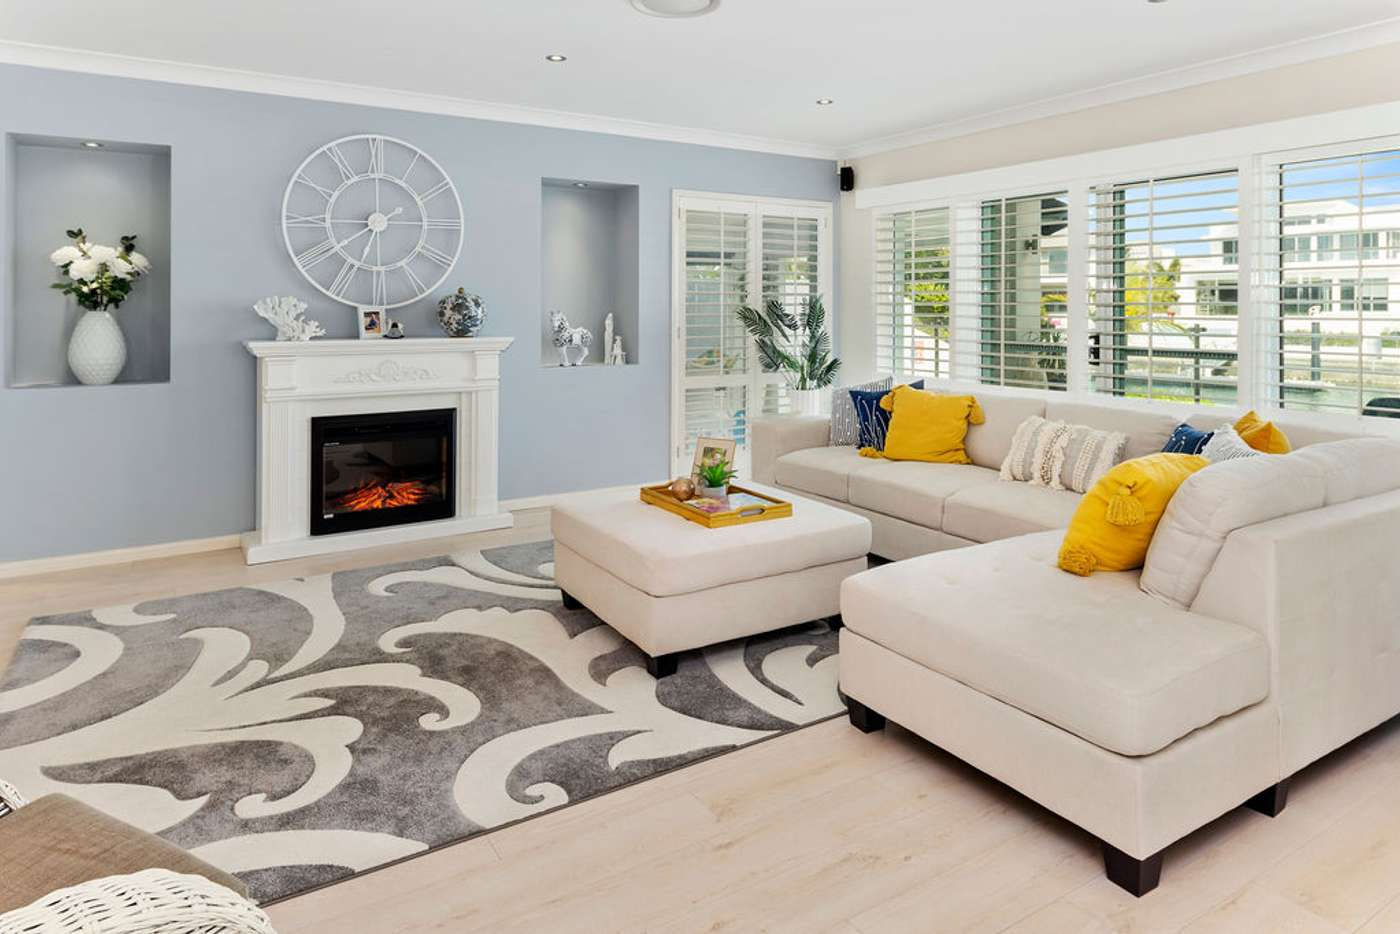 Seventh view of Homely house listing, 47 KNIGHTSBRIDGE PARADE EAST, Sovereign Islands QLD 4216